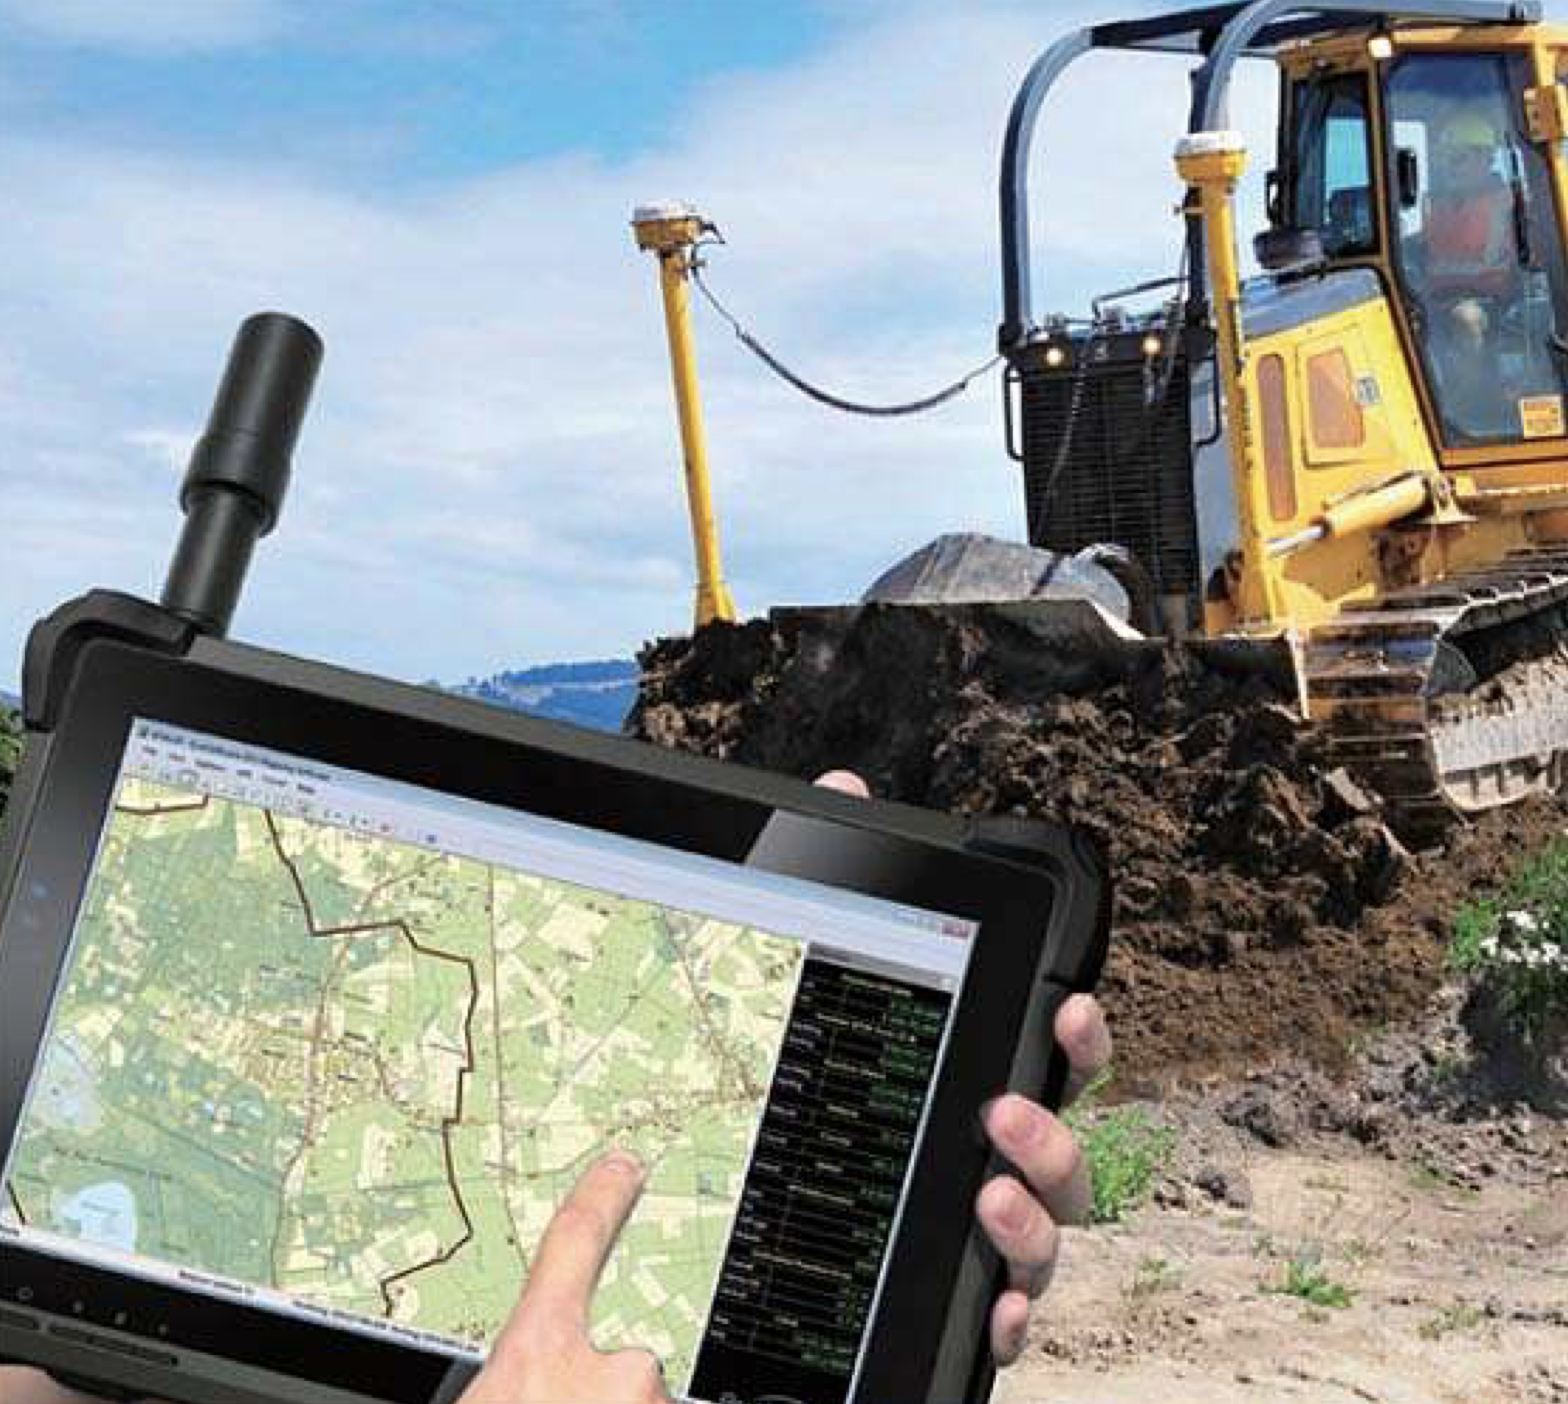 DT Research Introduces First Purpose-Built Rugged Tablet with Scientific-Grade GNSS